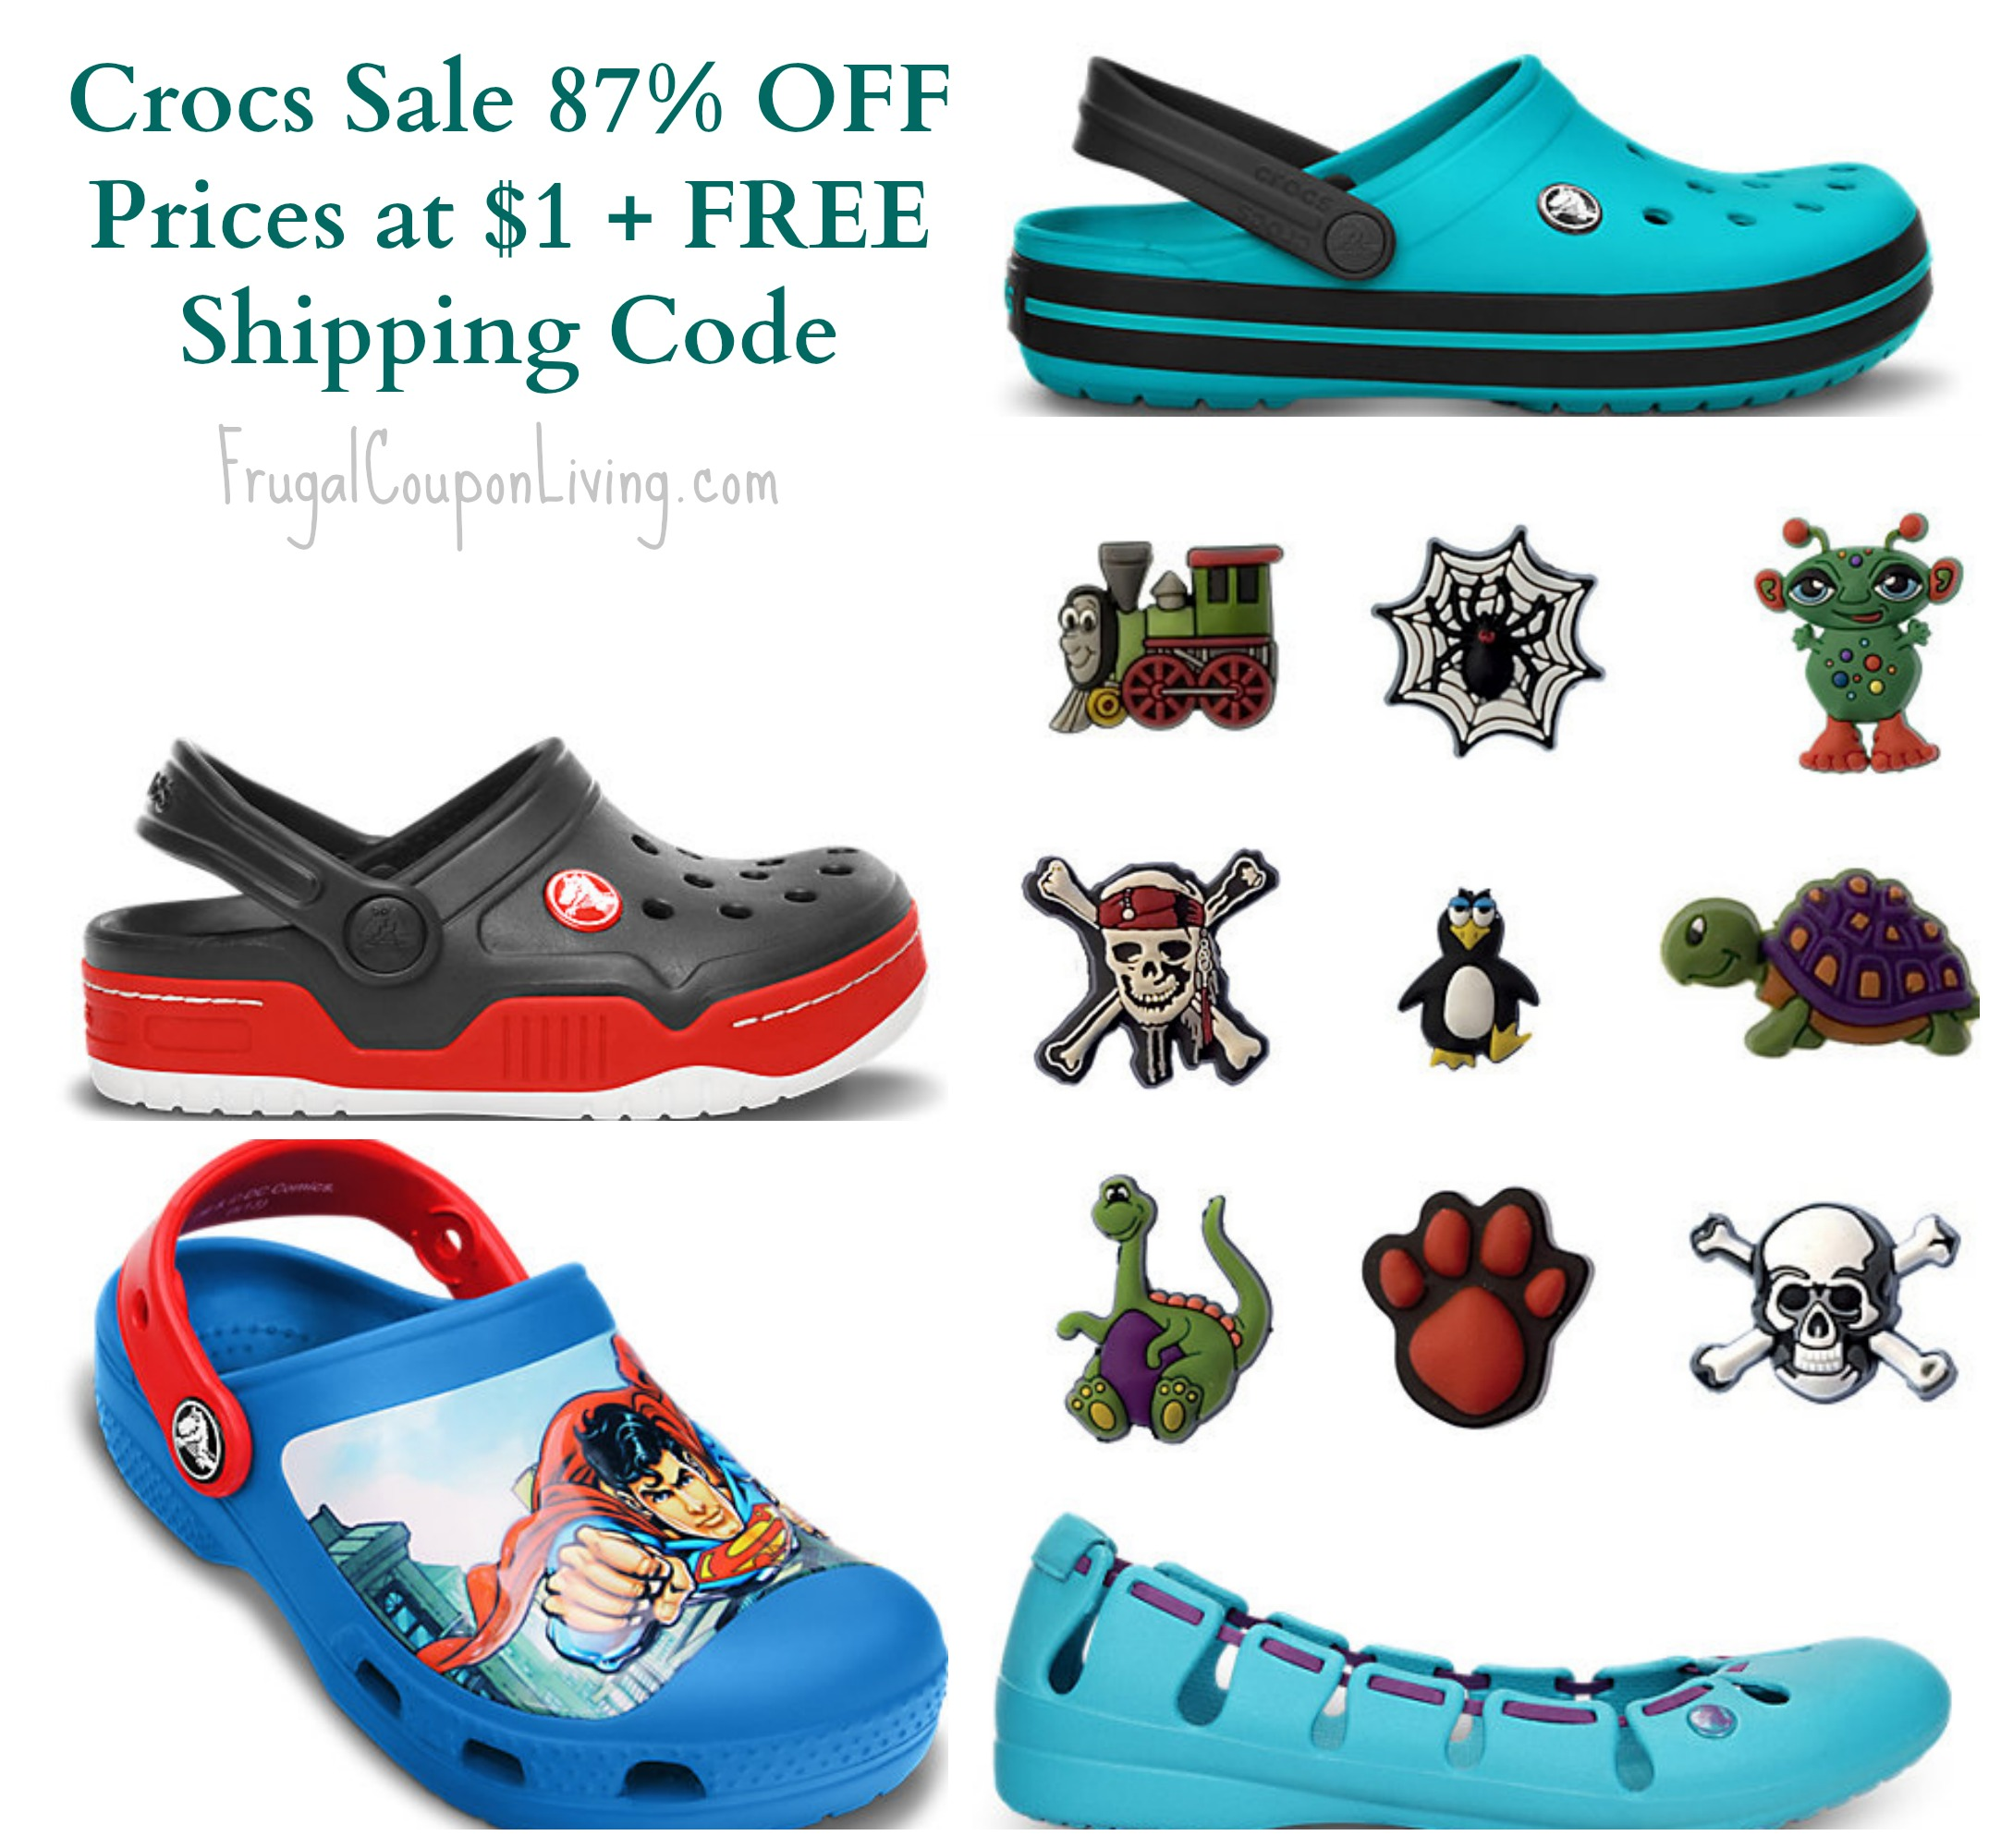 new product 90fed 59181 Crocs Sale | 87% OFF with Prices Starting at $1 + FREE ...